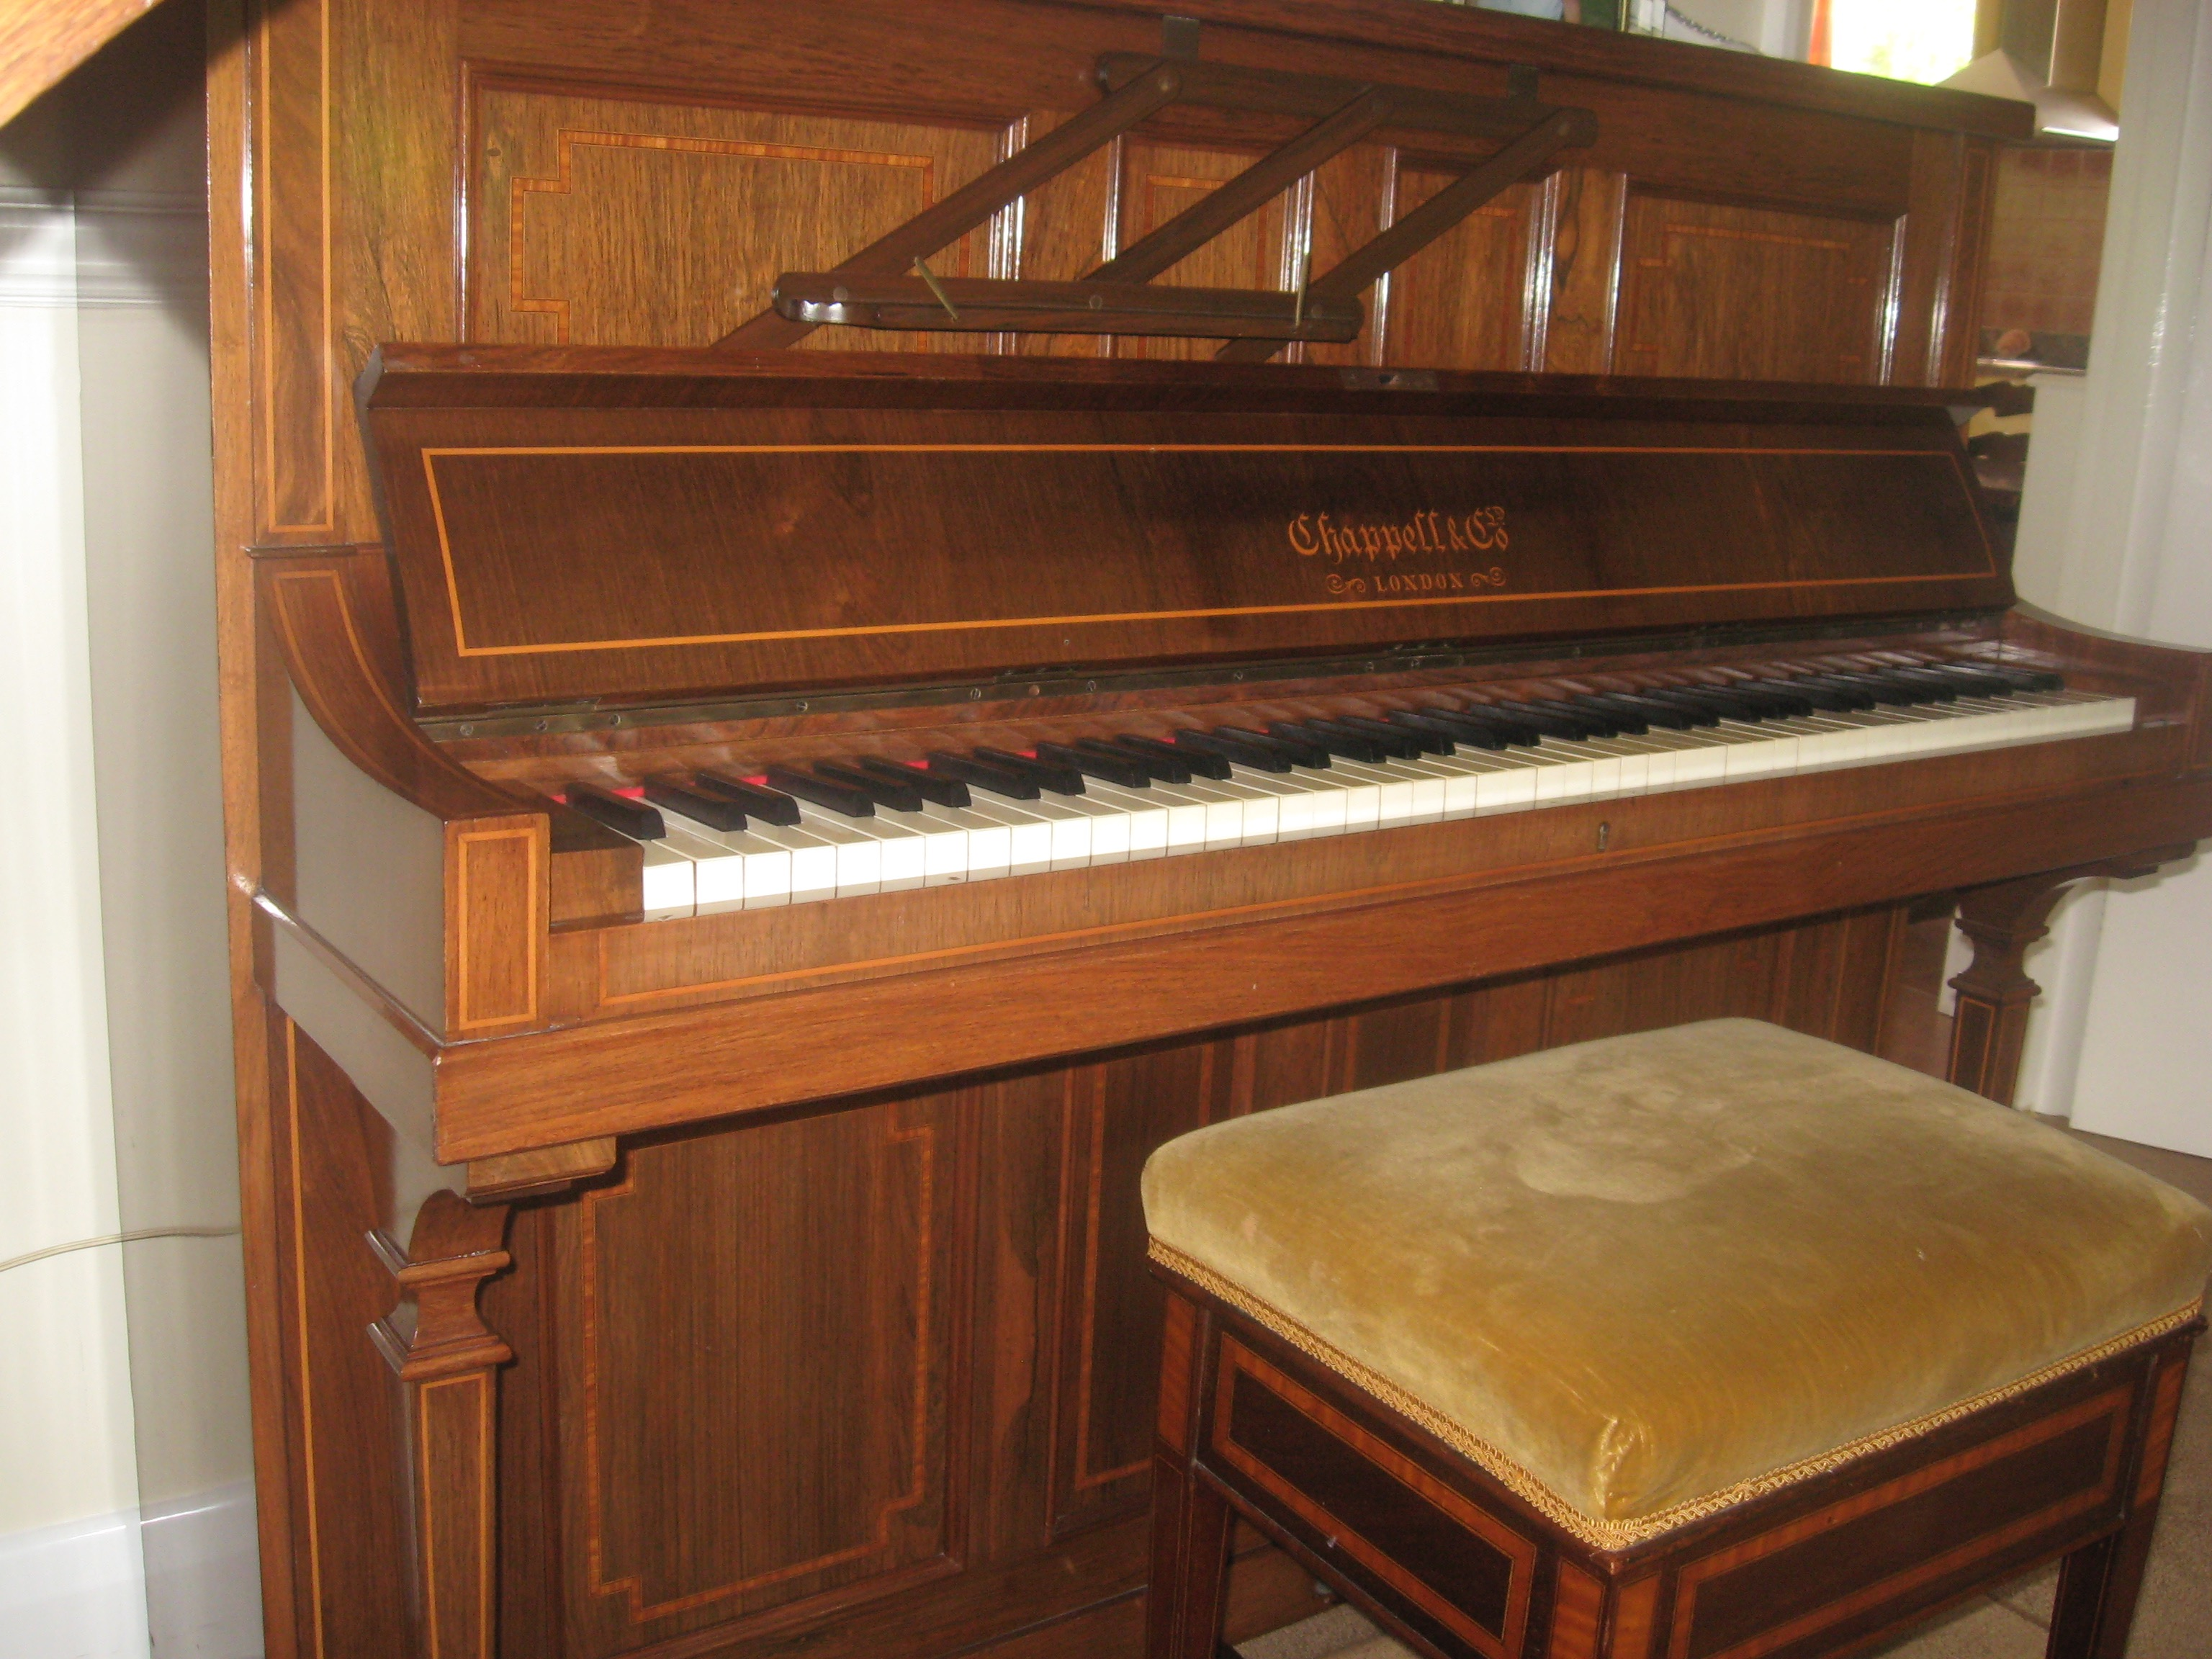 1960 Piano For Sale Pianos-pianos For Sale